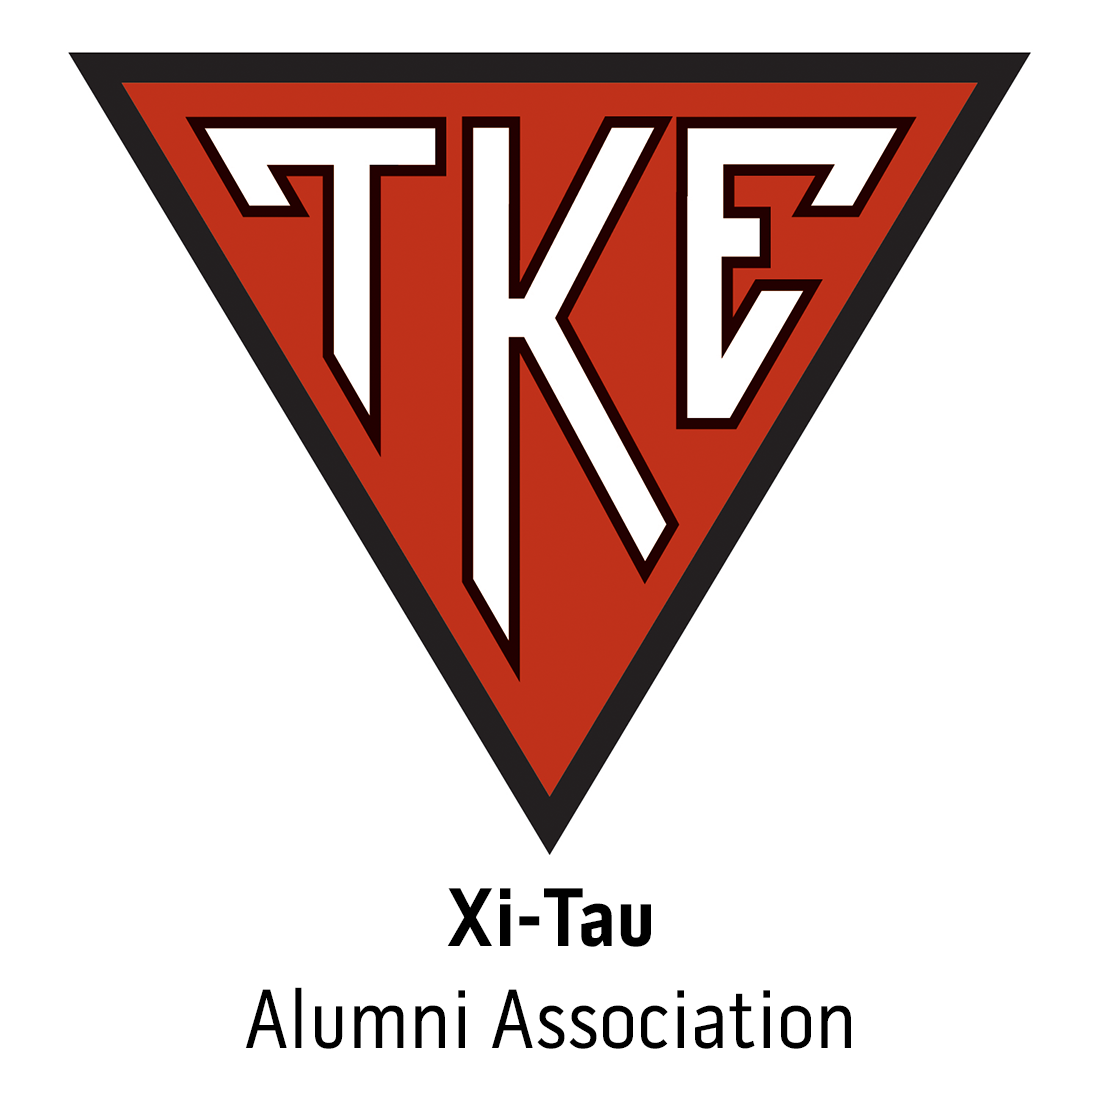 Xi-Tau Alumni Association at Lyon College